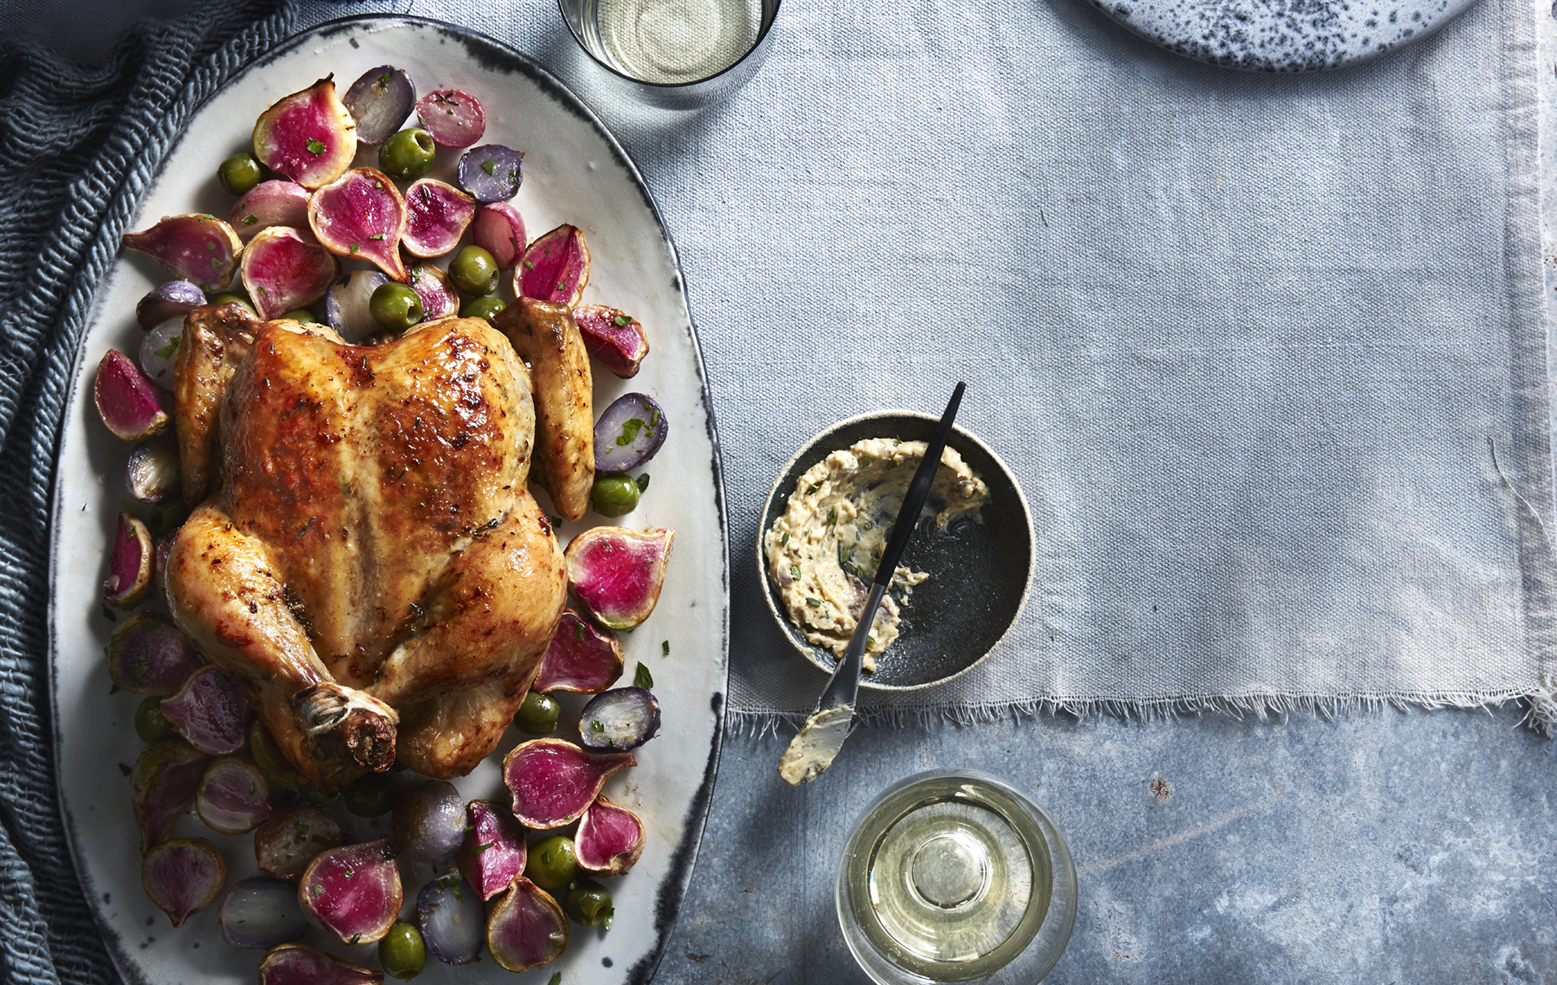 How My First Roast Chicken Paved the Way to More Adventurous Cooking